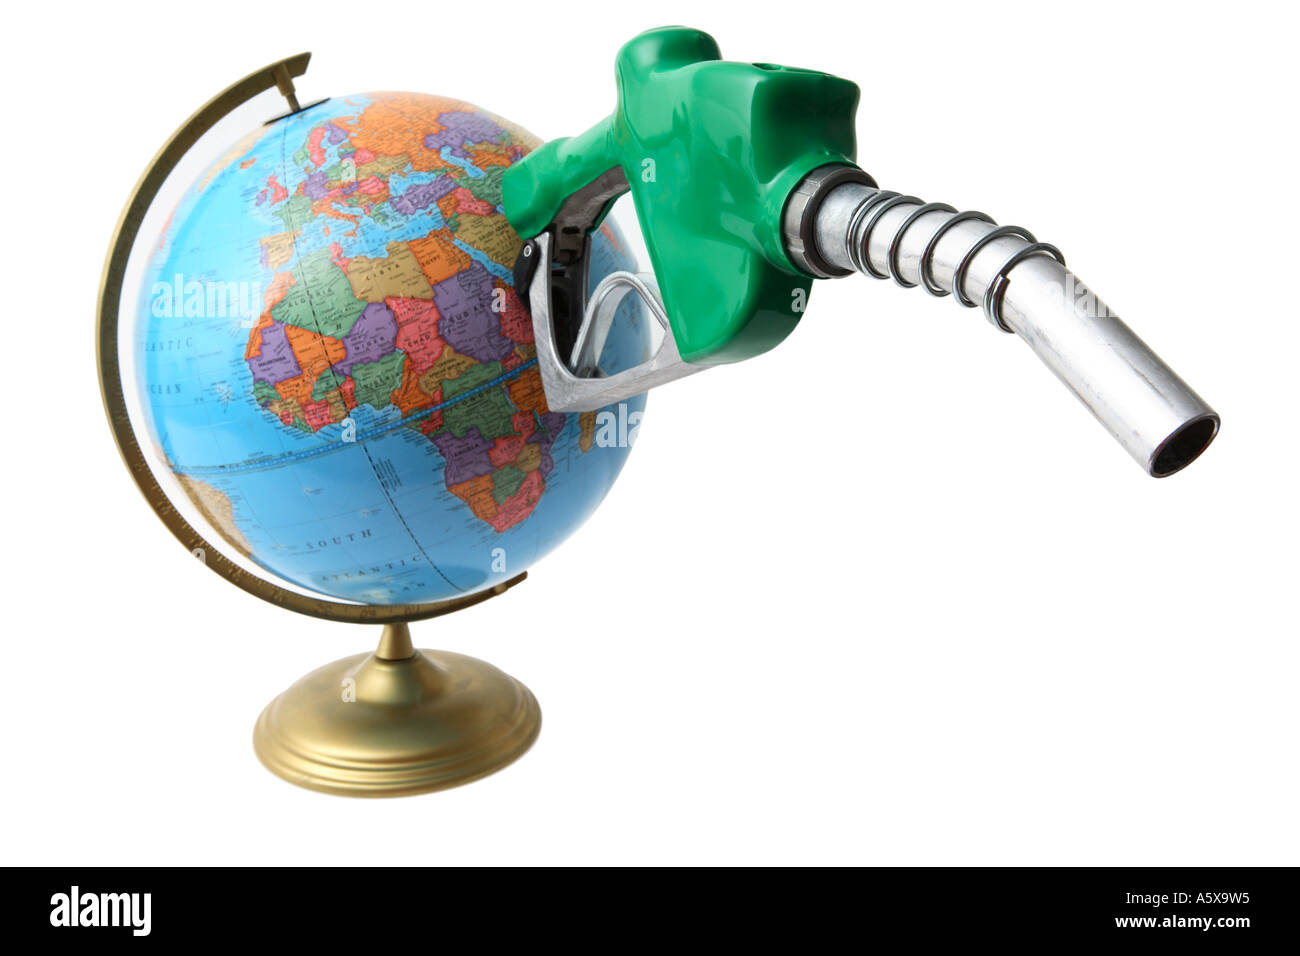 Globe with gas nozzle sticking out from Middle East area. - Stock Image